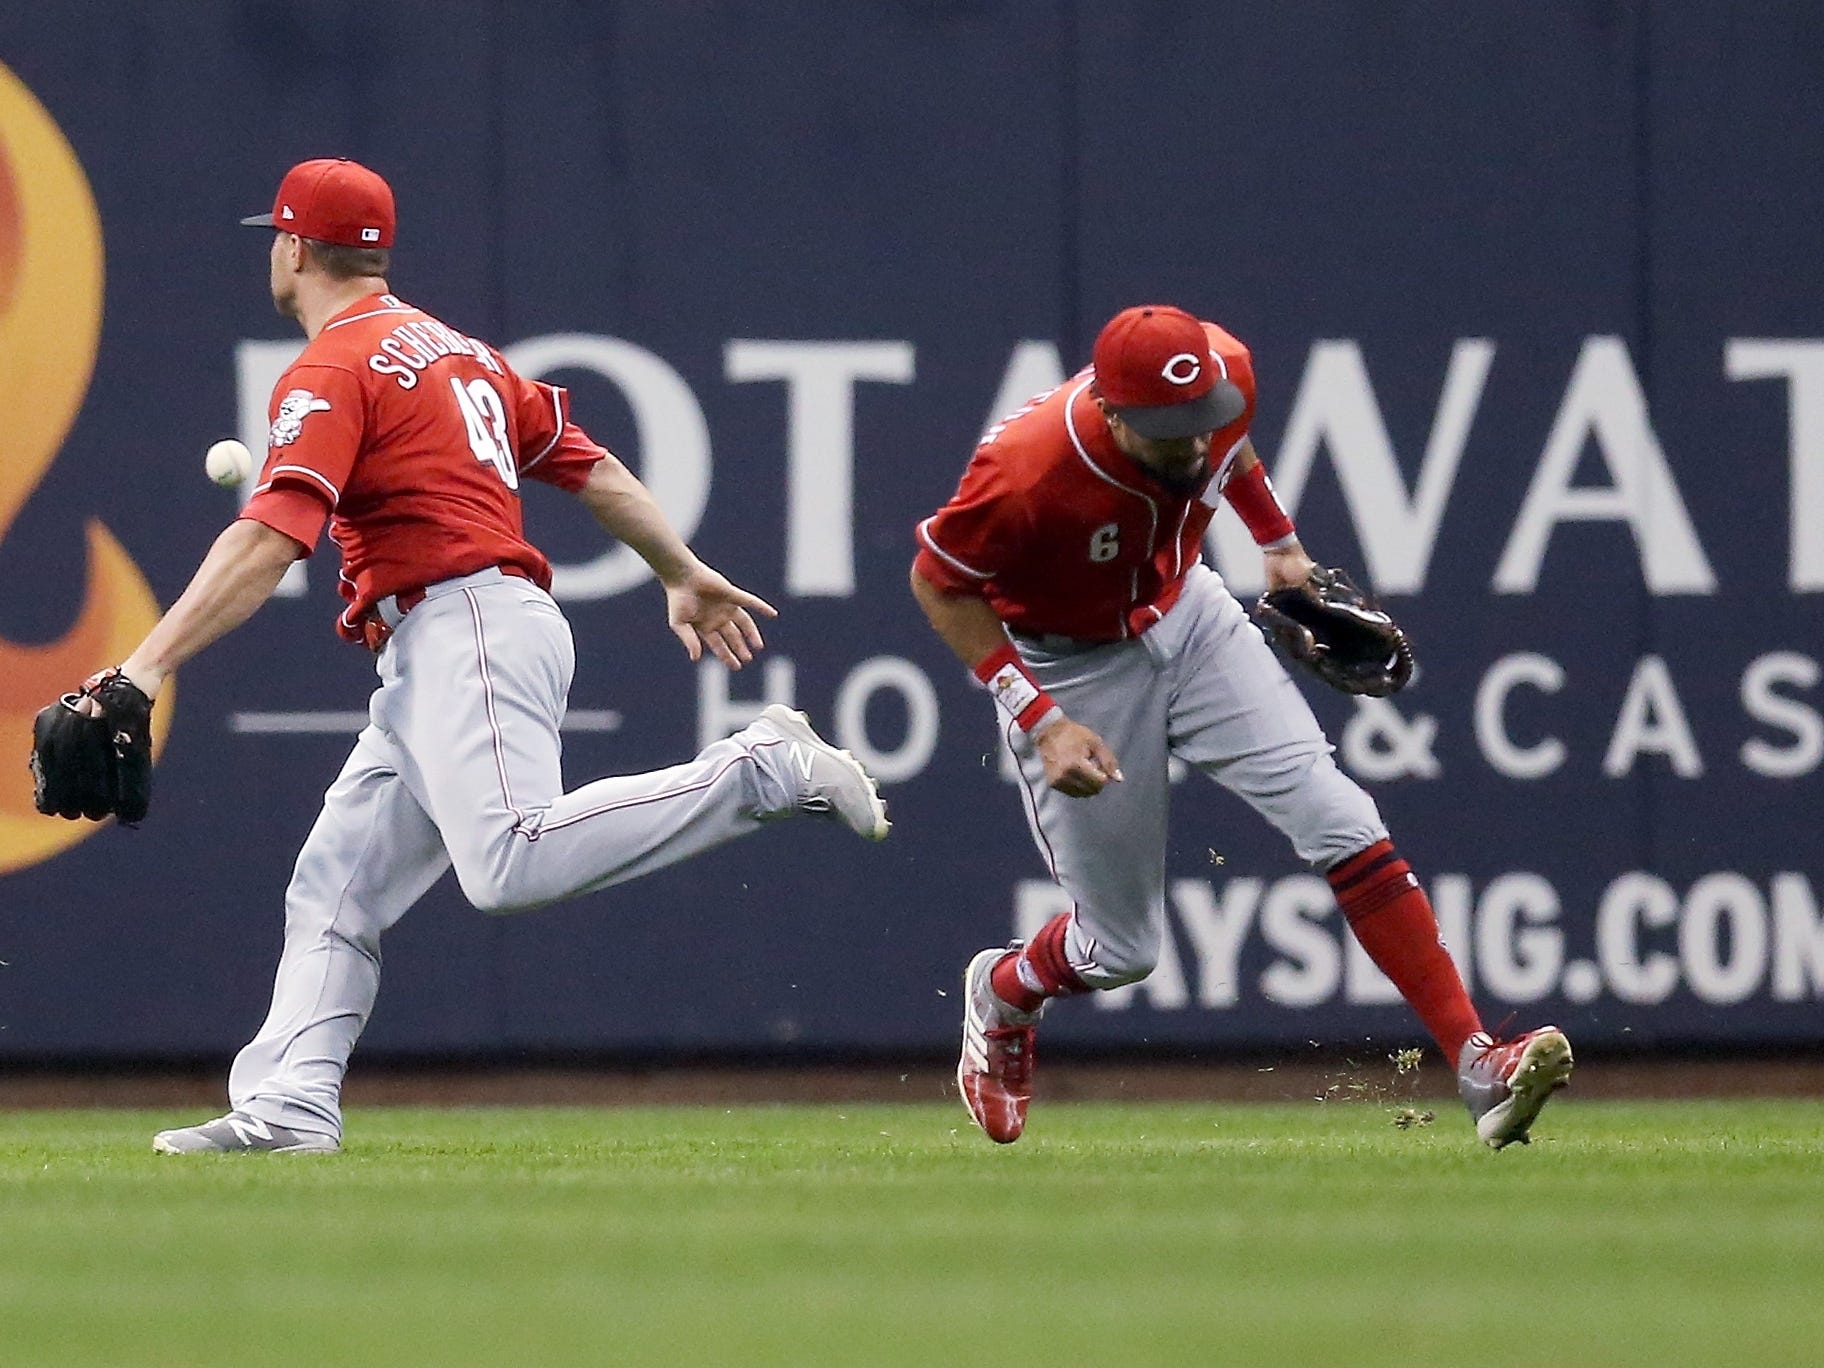 A liner off the bat of the Brewers' Domingo Santana gets past Reds outfielders Scott Schebler (left) and Billy Hamilton and rolls to the wall for a triple in the sixth inning.